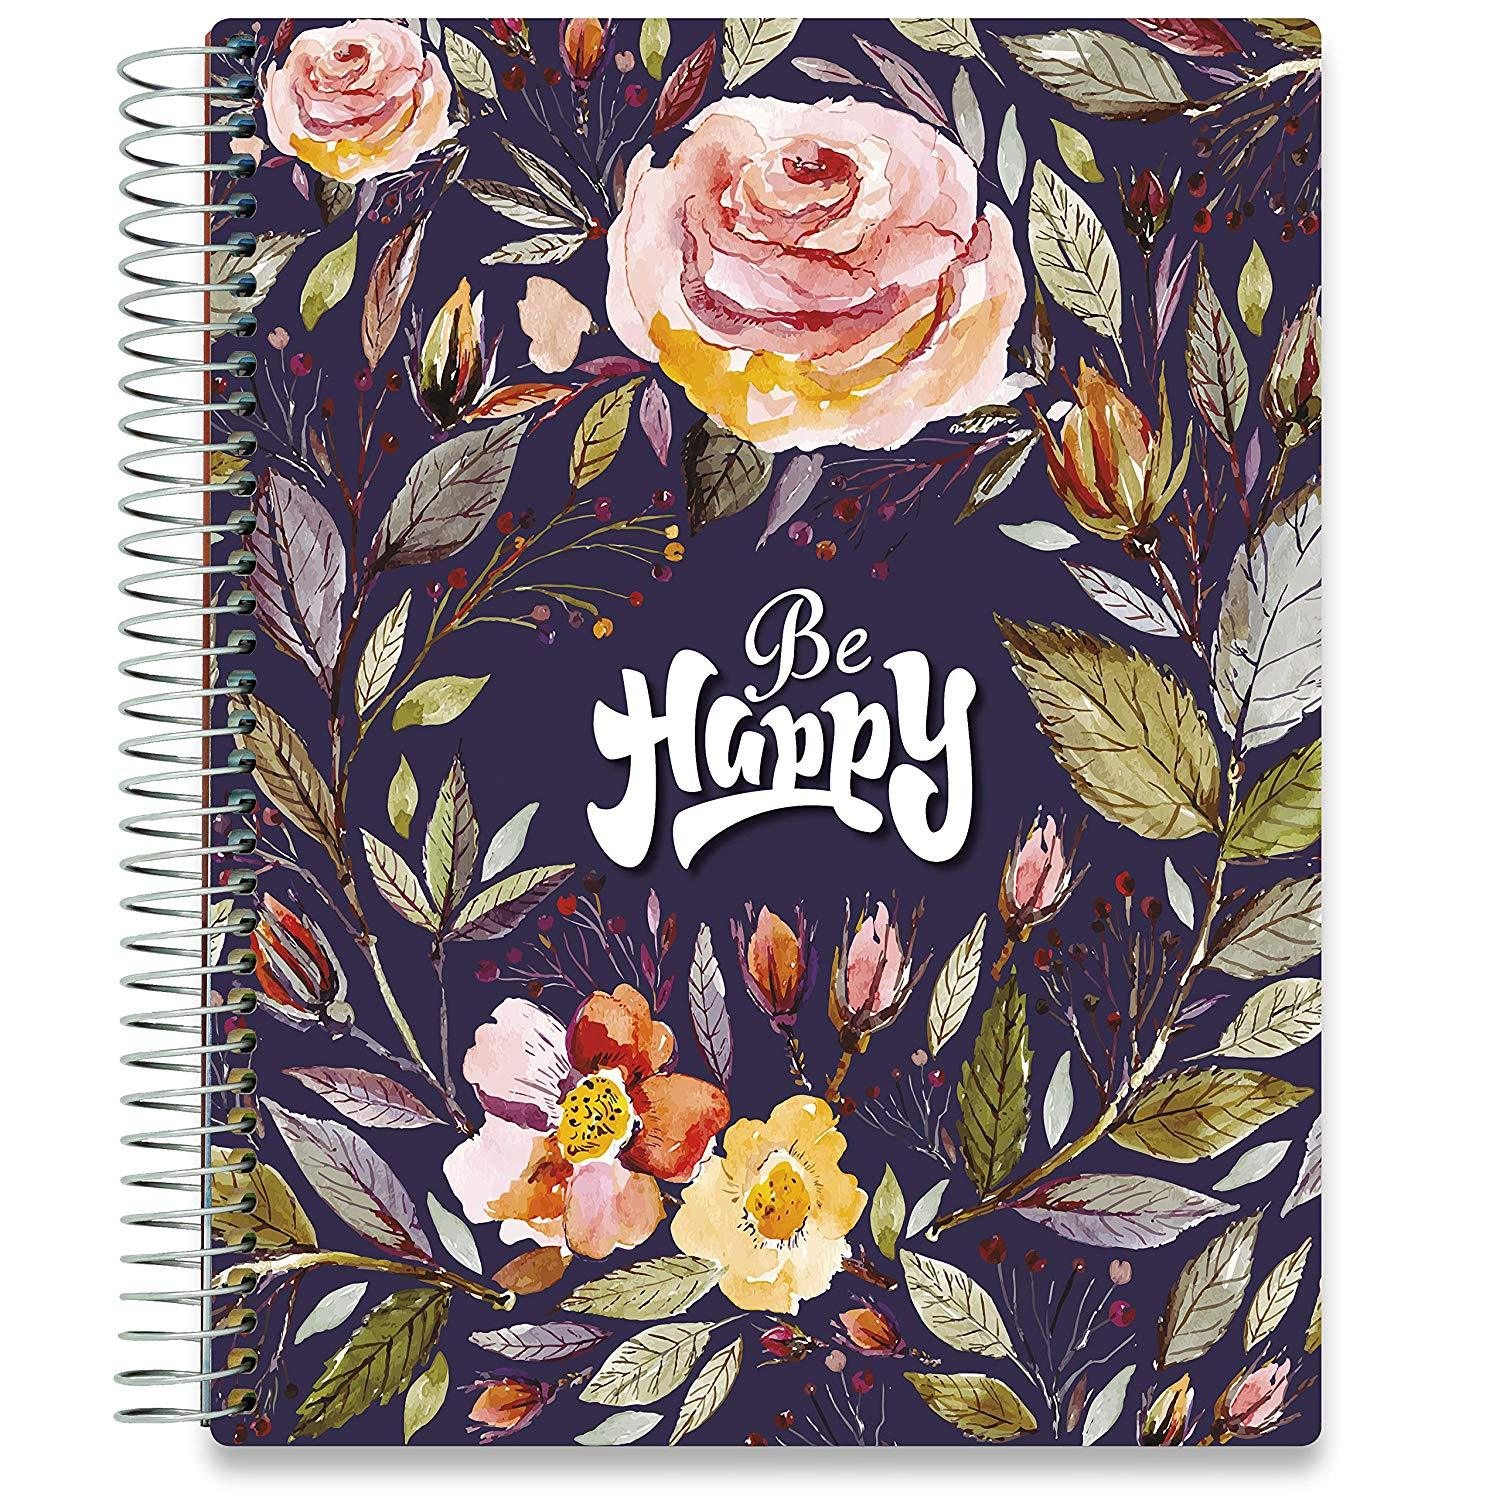 NEW: April 2020-2021 Planner - 8.5x11 - Be Happy v2-Office Product-Tools4Wisdom